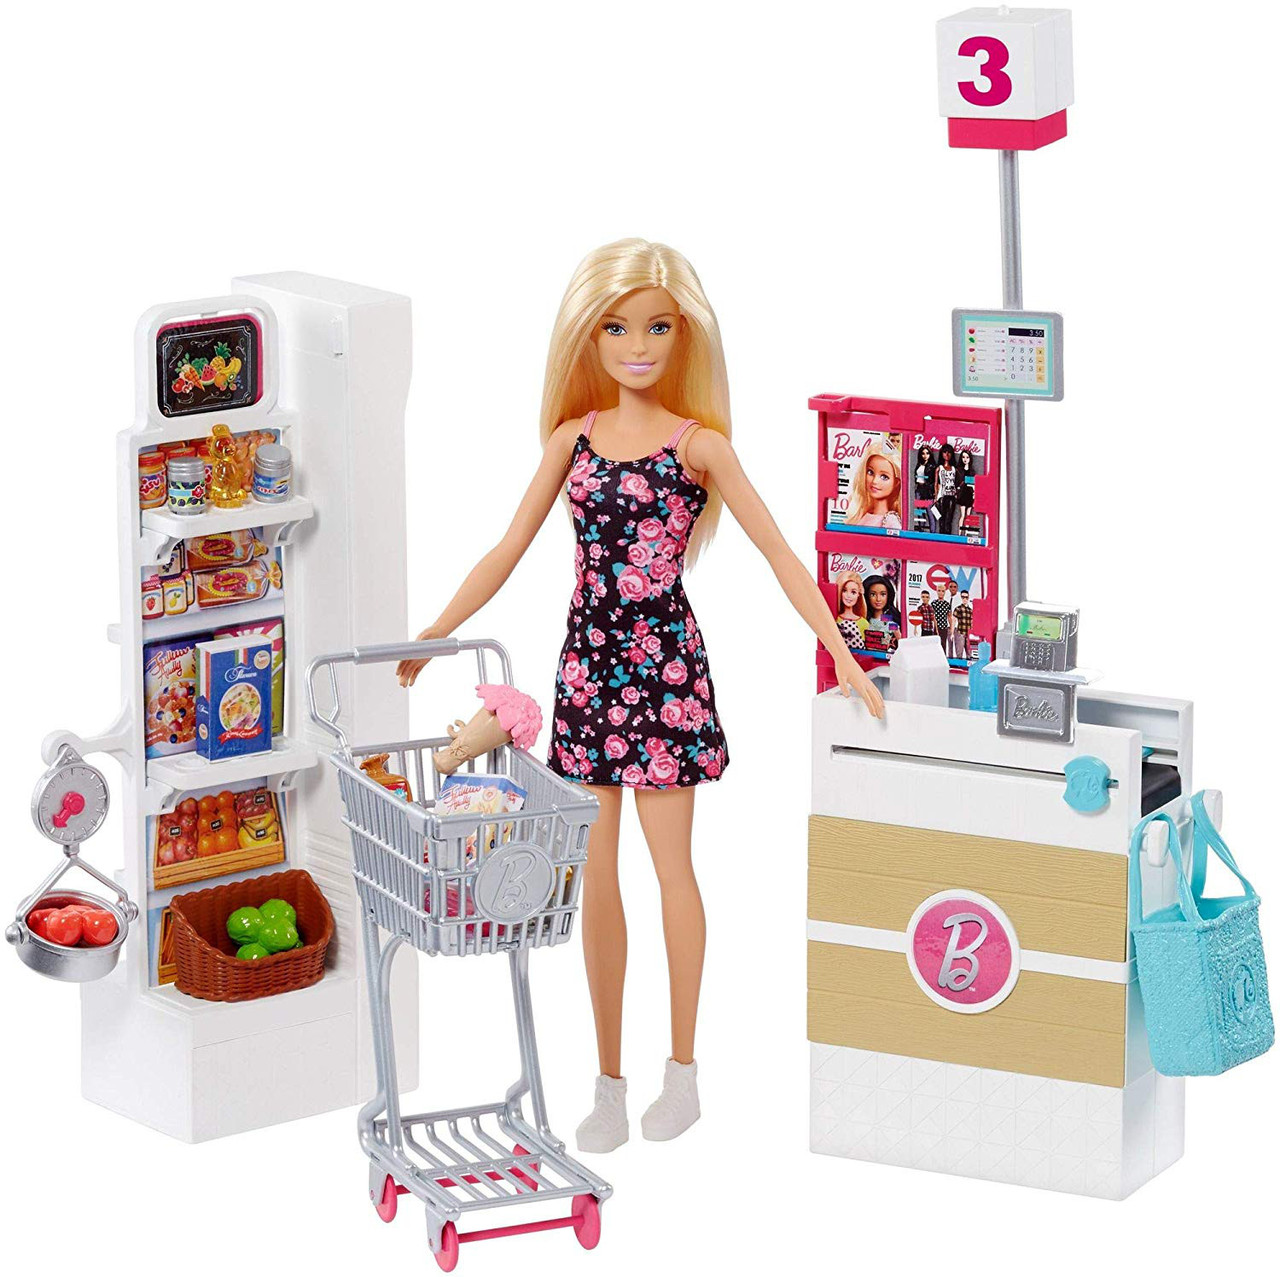 Ігровий набір Barbie Супермаркет Барбі у супермаркеті Barbie supermarket mattel FRP01